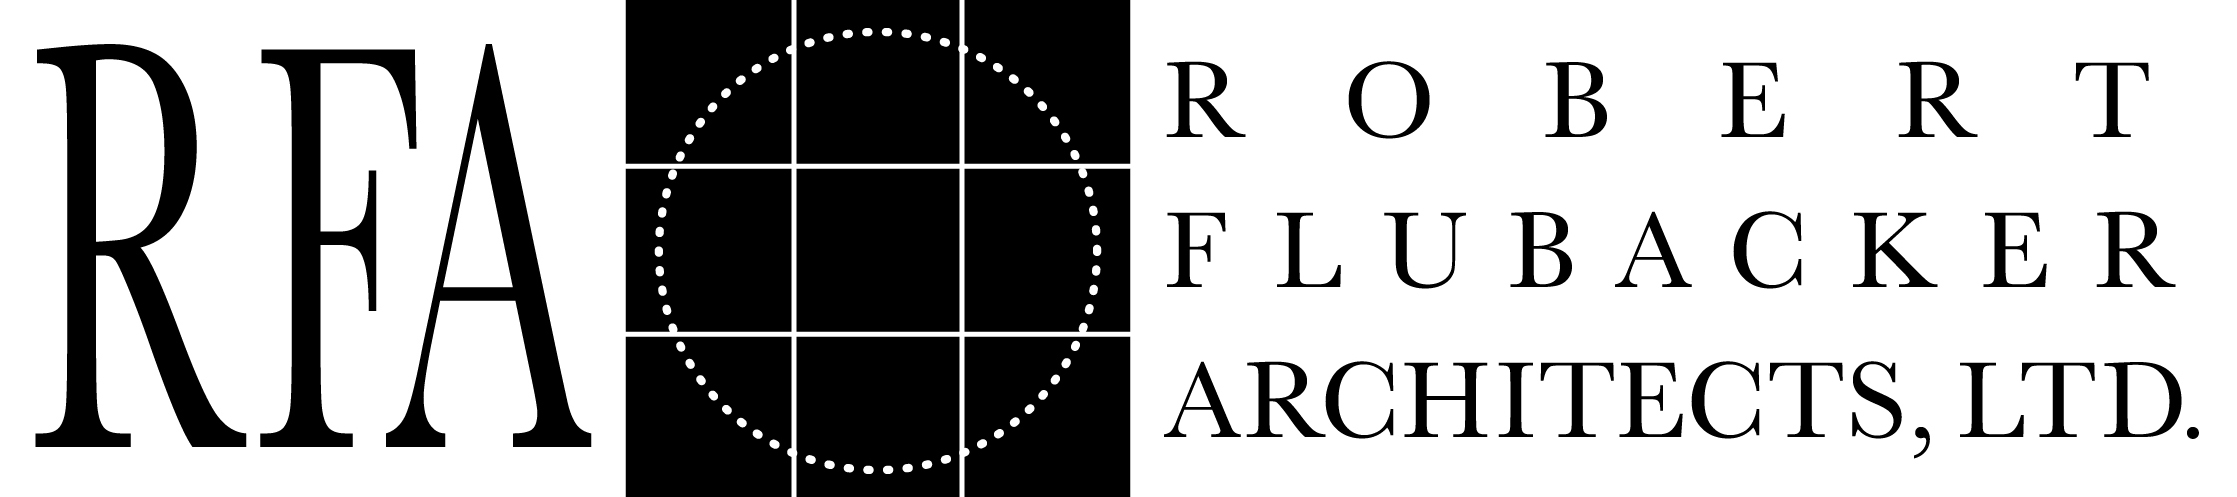 Robert Flubacker Architects, Ltd